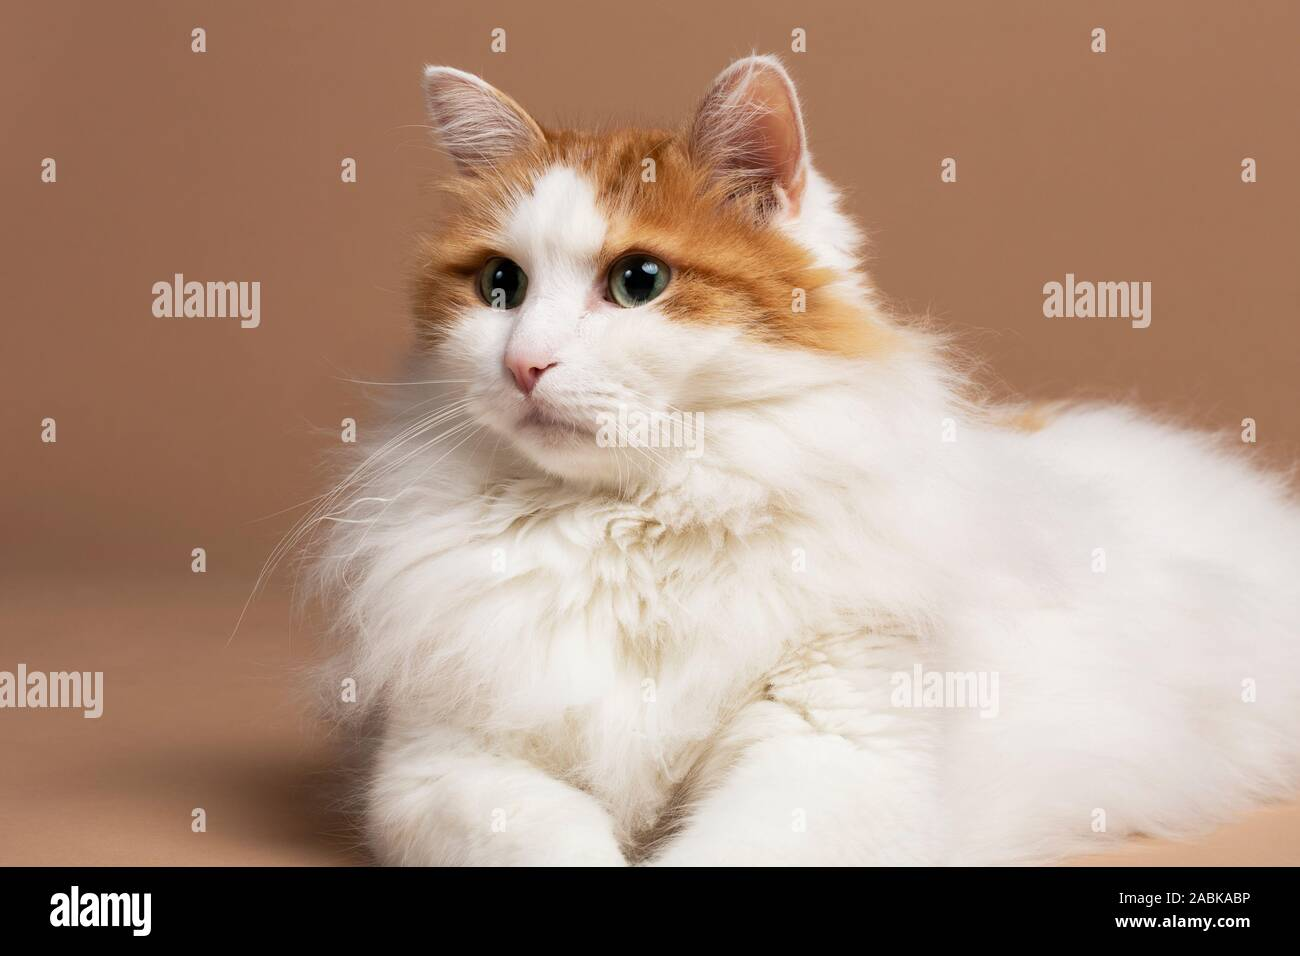 A Portrait Of A Cute Beautiful Fluffy White And Brown Colored Turkish Van Cat With Green Eyes Laying In Front Of A Brown Beige Background Horizontal S Stock Photo Alamy